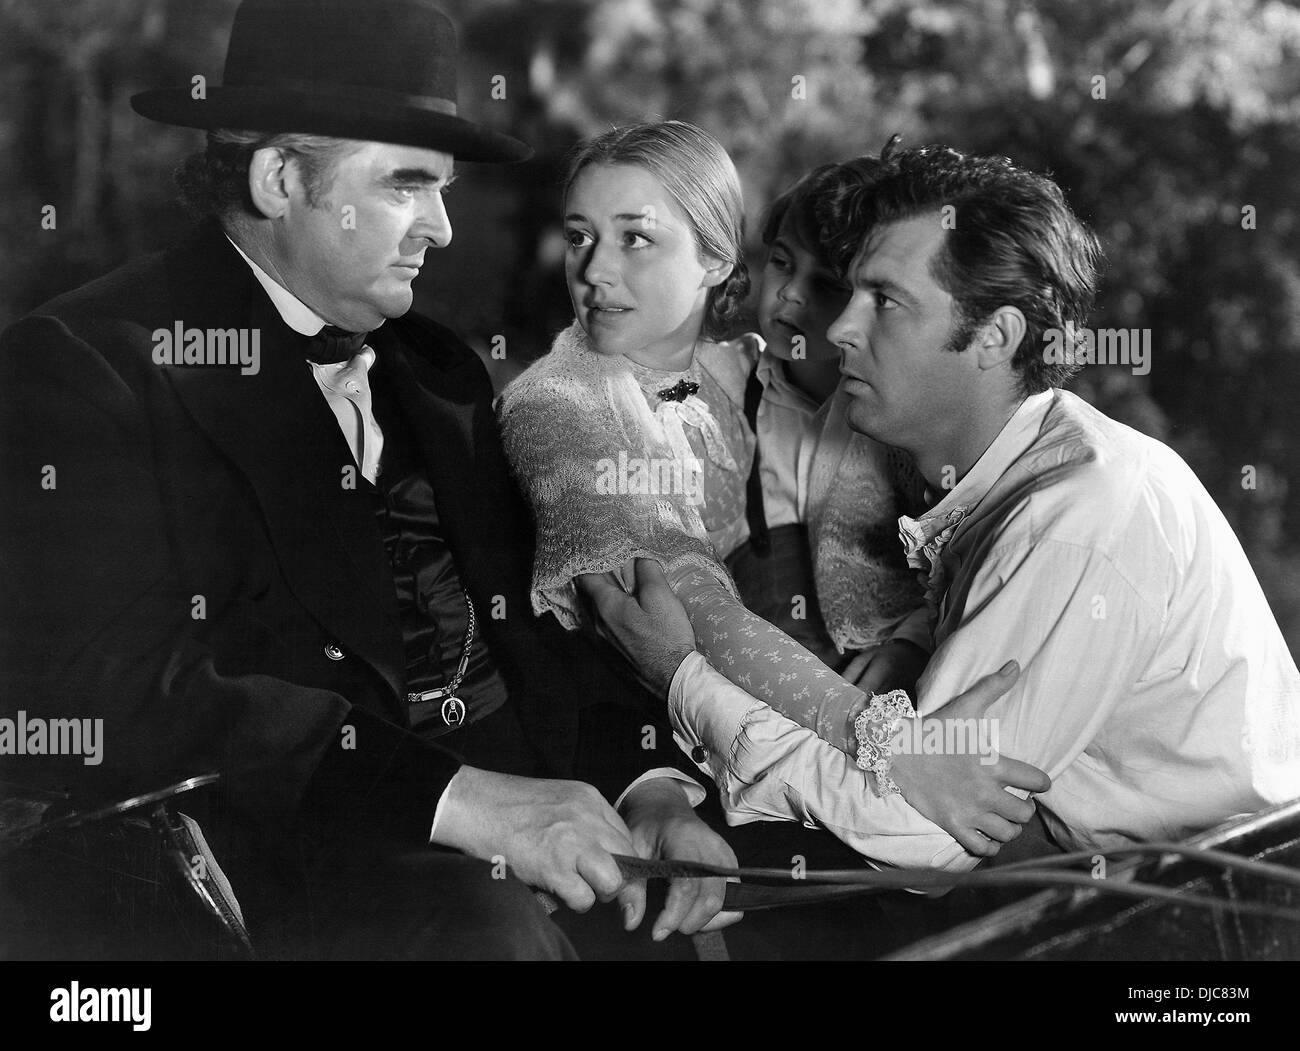 Edward Arnold, Anne Shirley and James Craig on-set of the Film, The Devil and Daniel Webster (aka All That Money Can Buy), 1941 - Stock Image